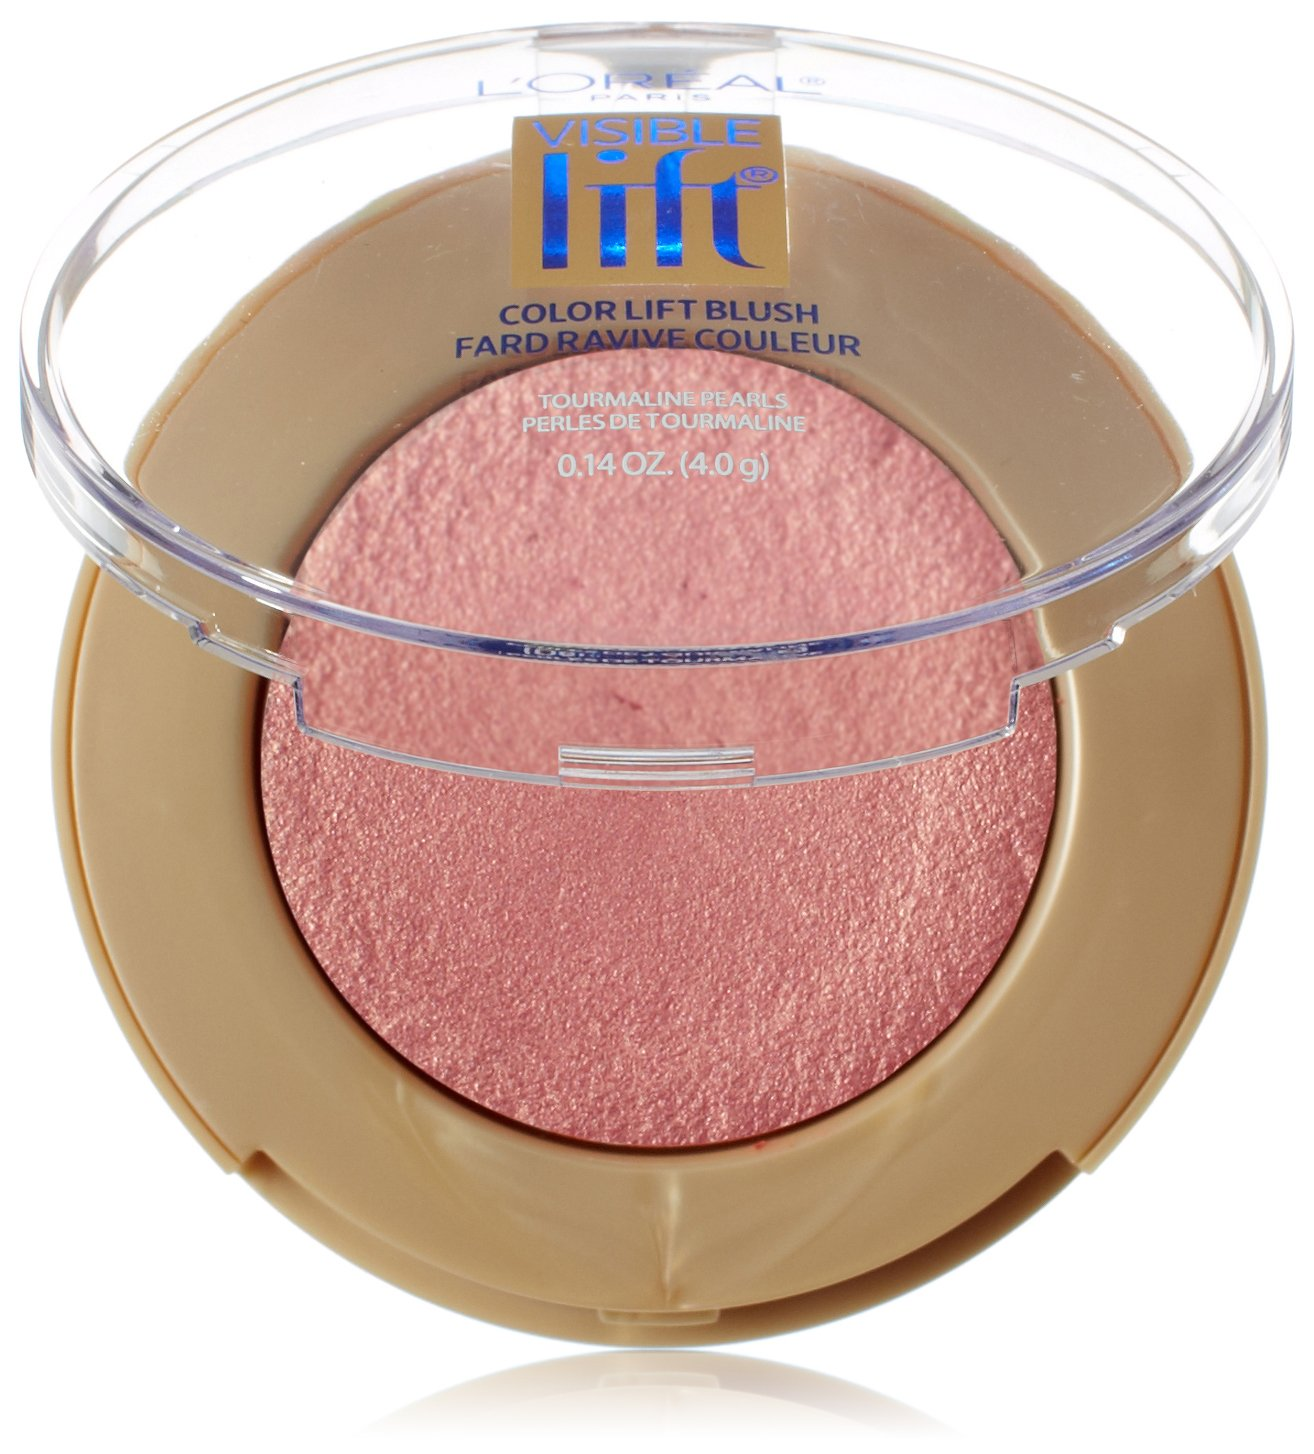 L'Oréal Paris Visible Lift Color Lift Blush, Rose Gold Lift, 0.14 oz.